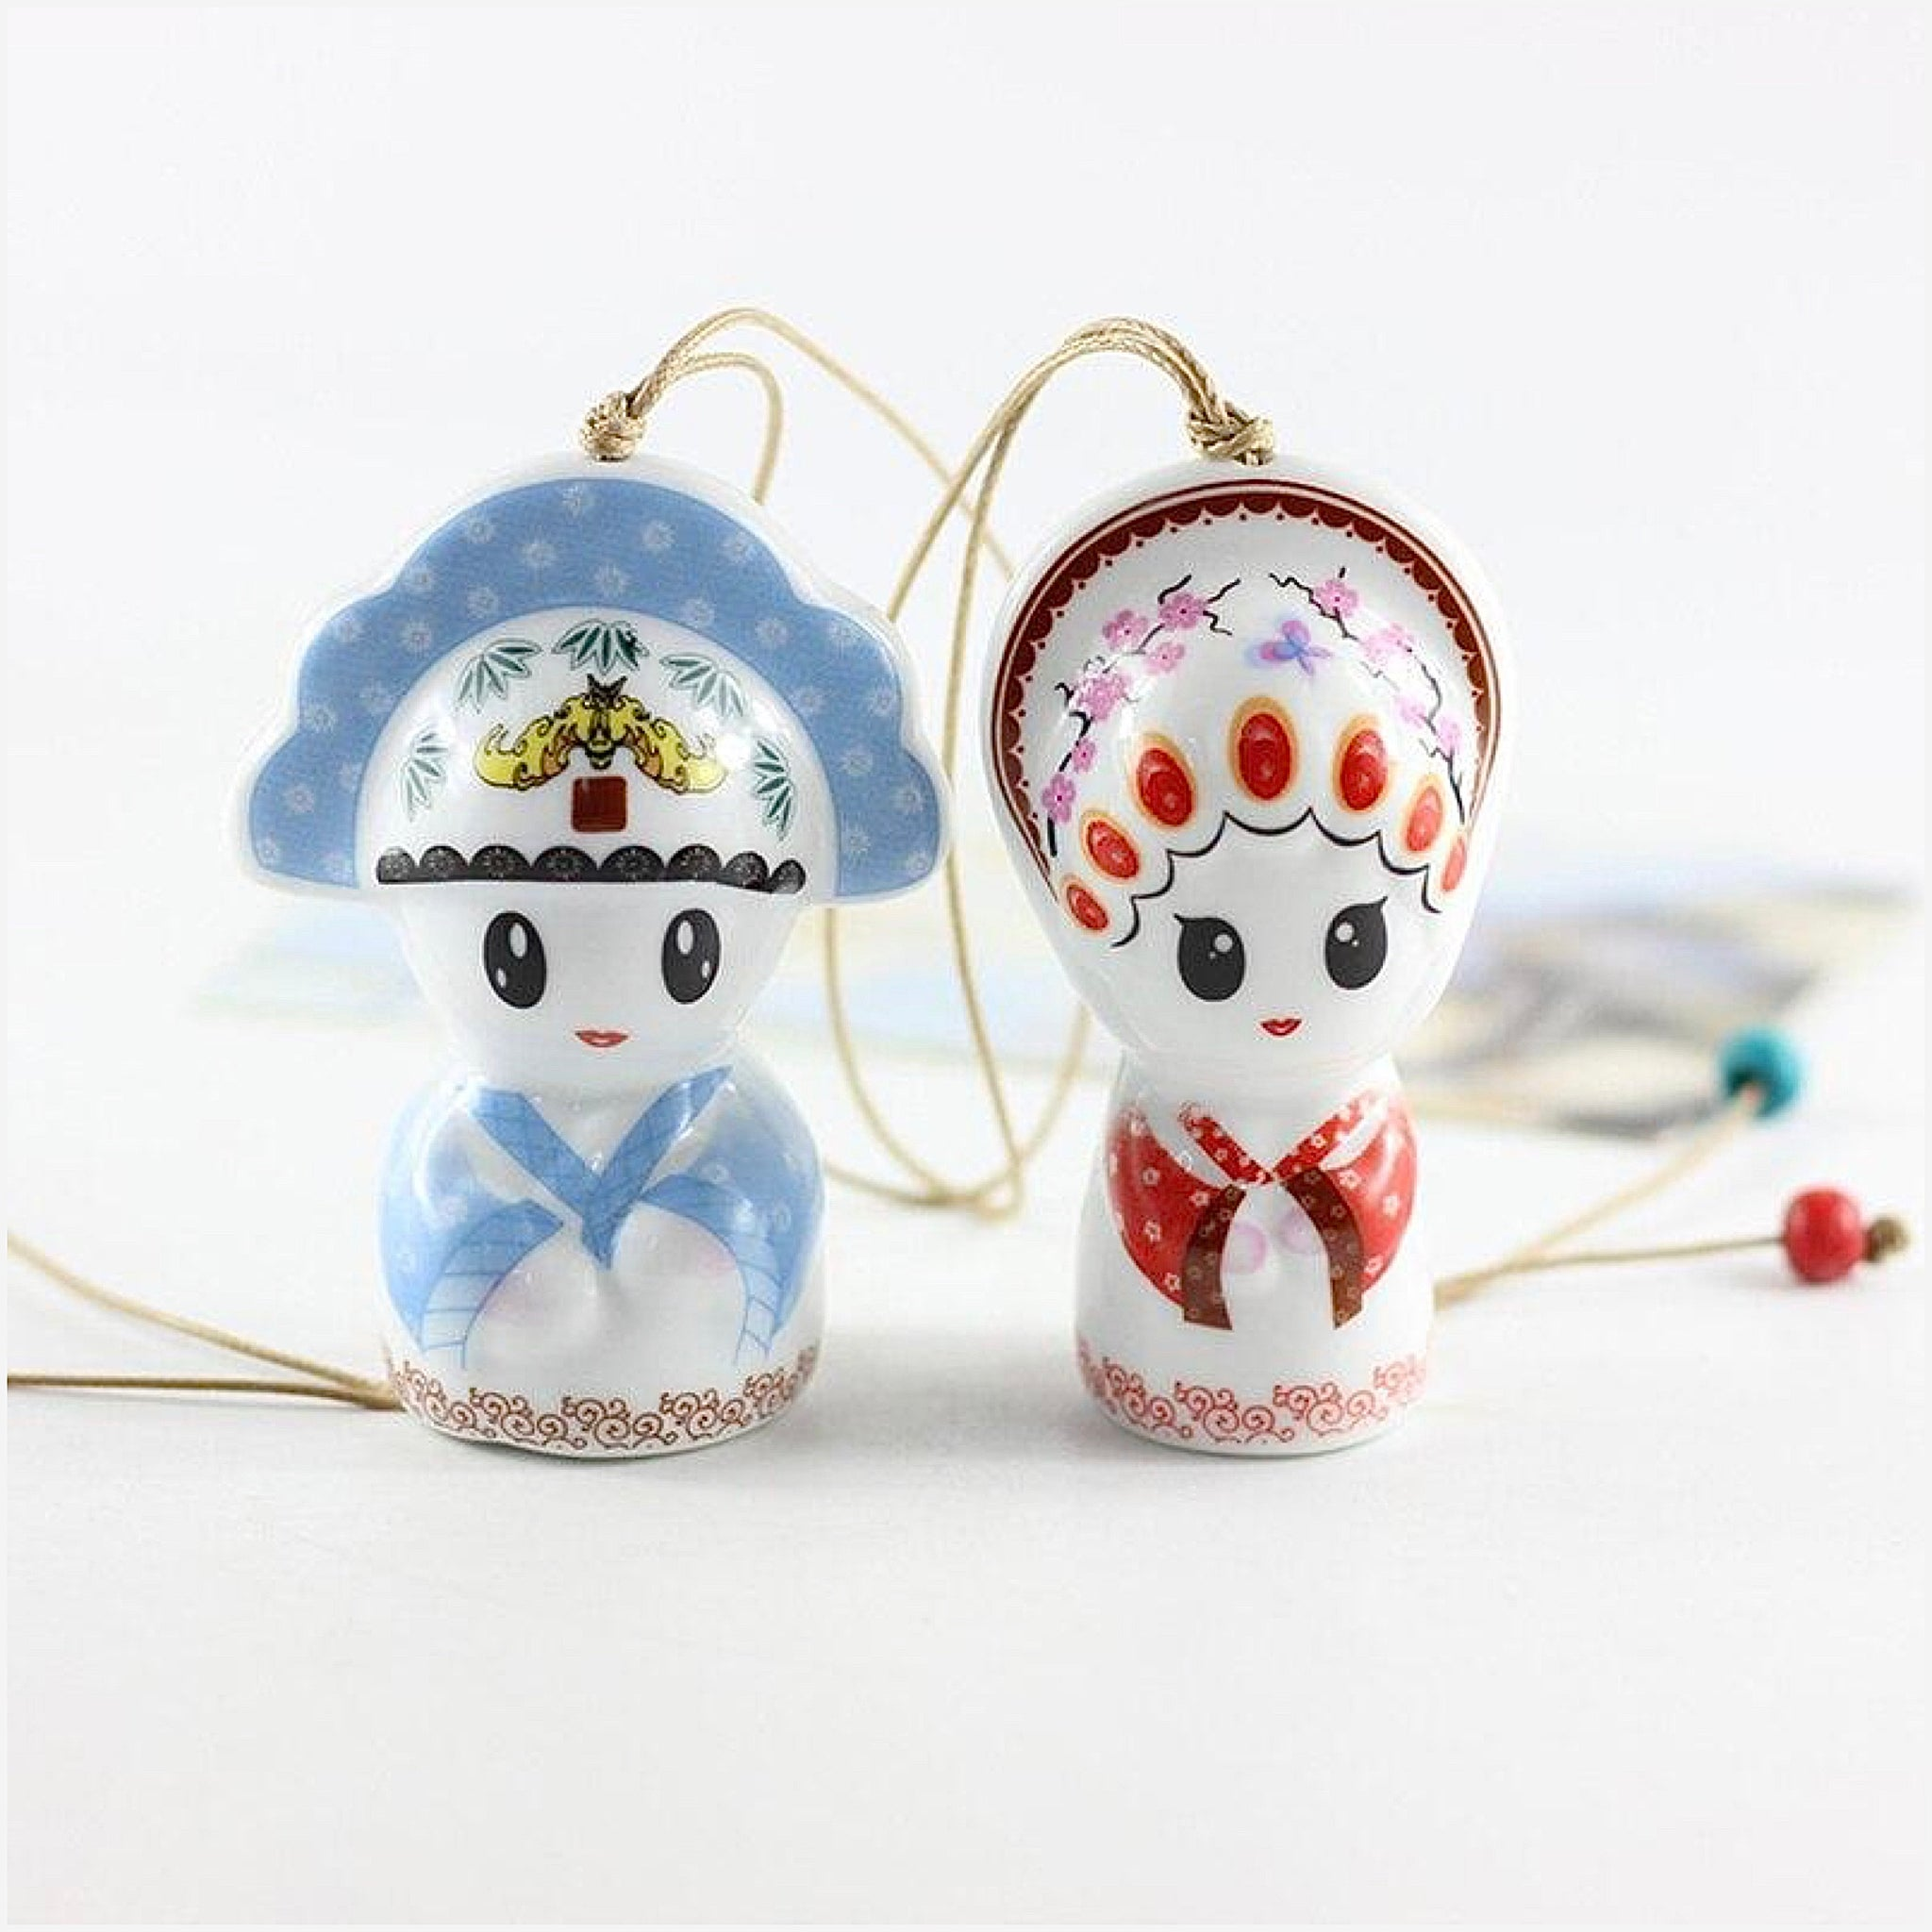 Ceramic Japanese Edo Wind Chimes Handmade Wind Bells Chime Hanging Decoration Window Pendant Japan Creative Gift Trend